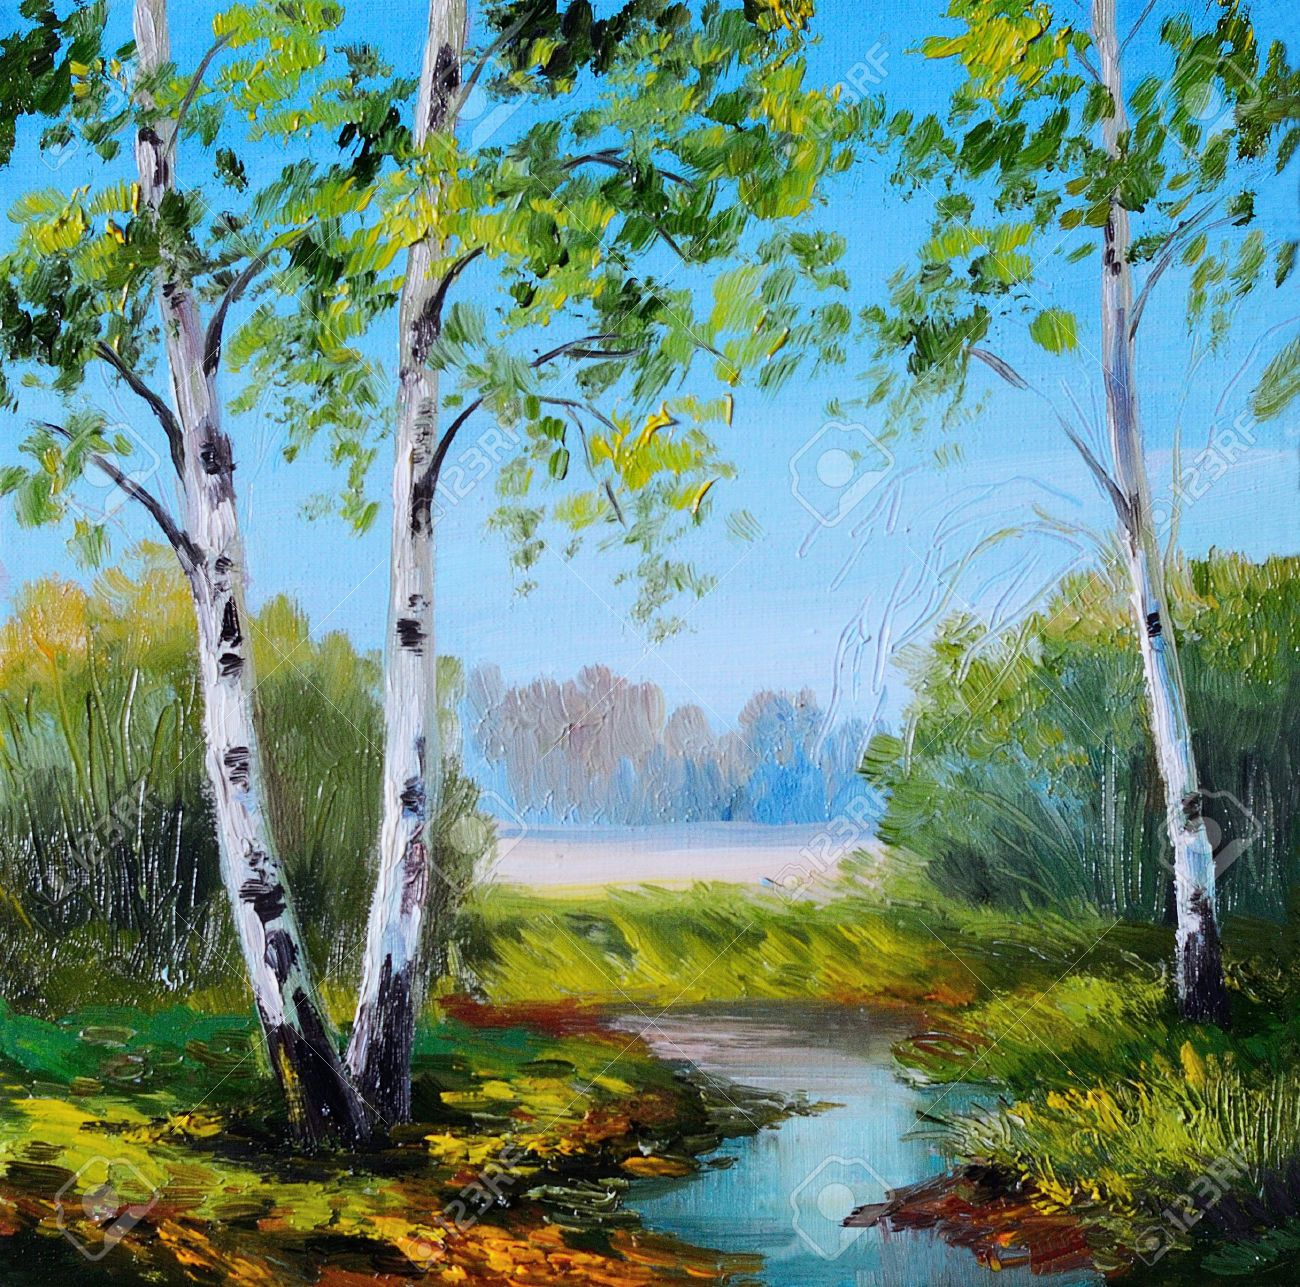 Oil Painting Birch In The Field Near The River Summer Spring Landscape Art Painting Birches Painting Birch Trees Painting